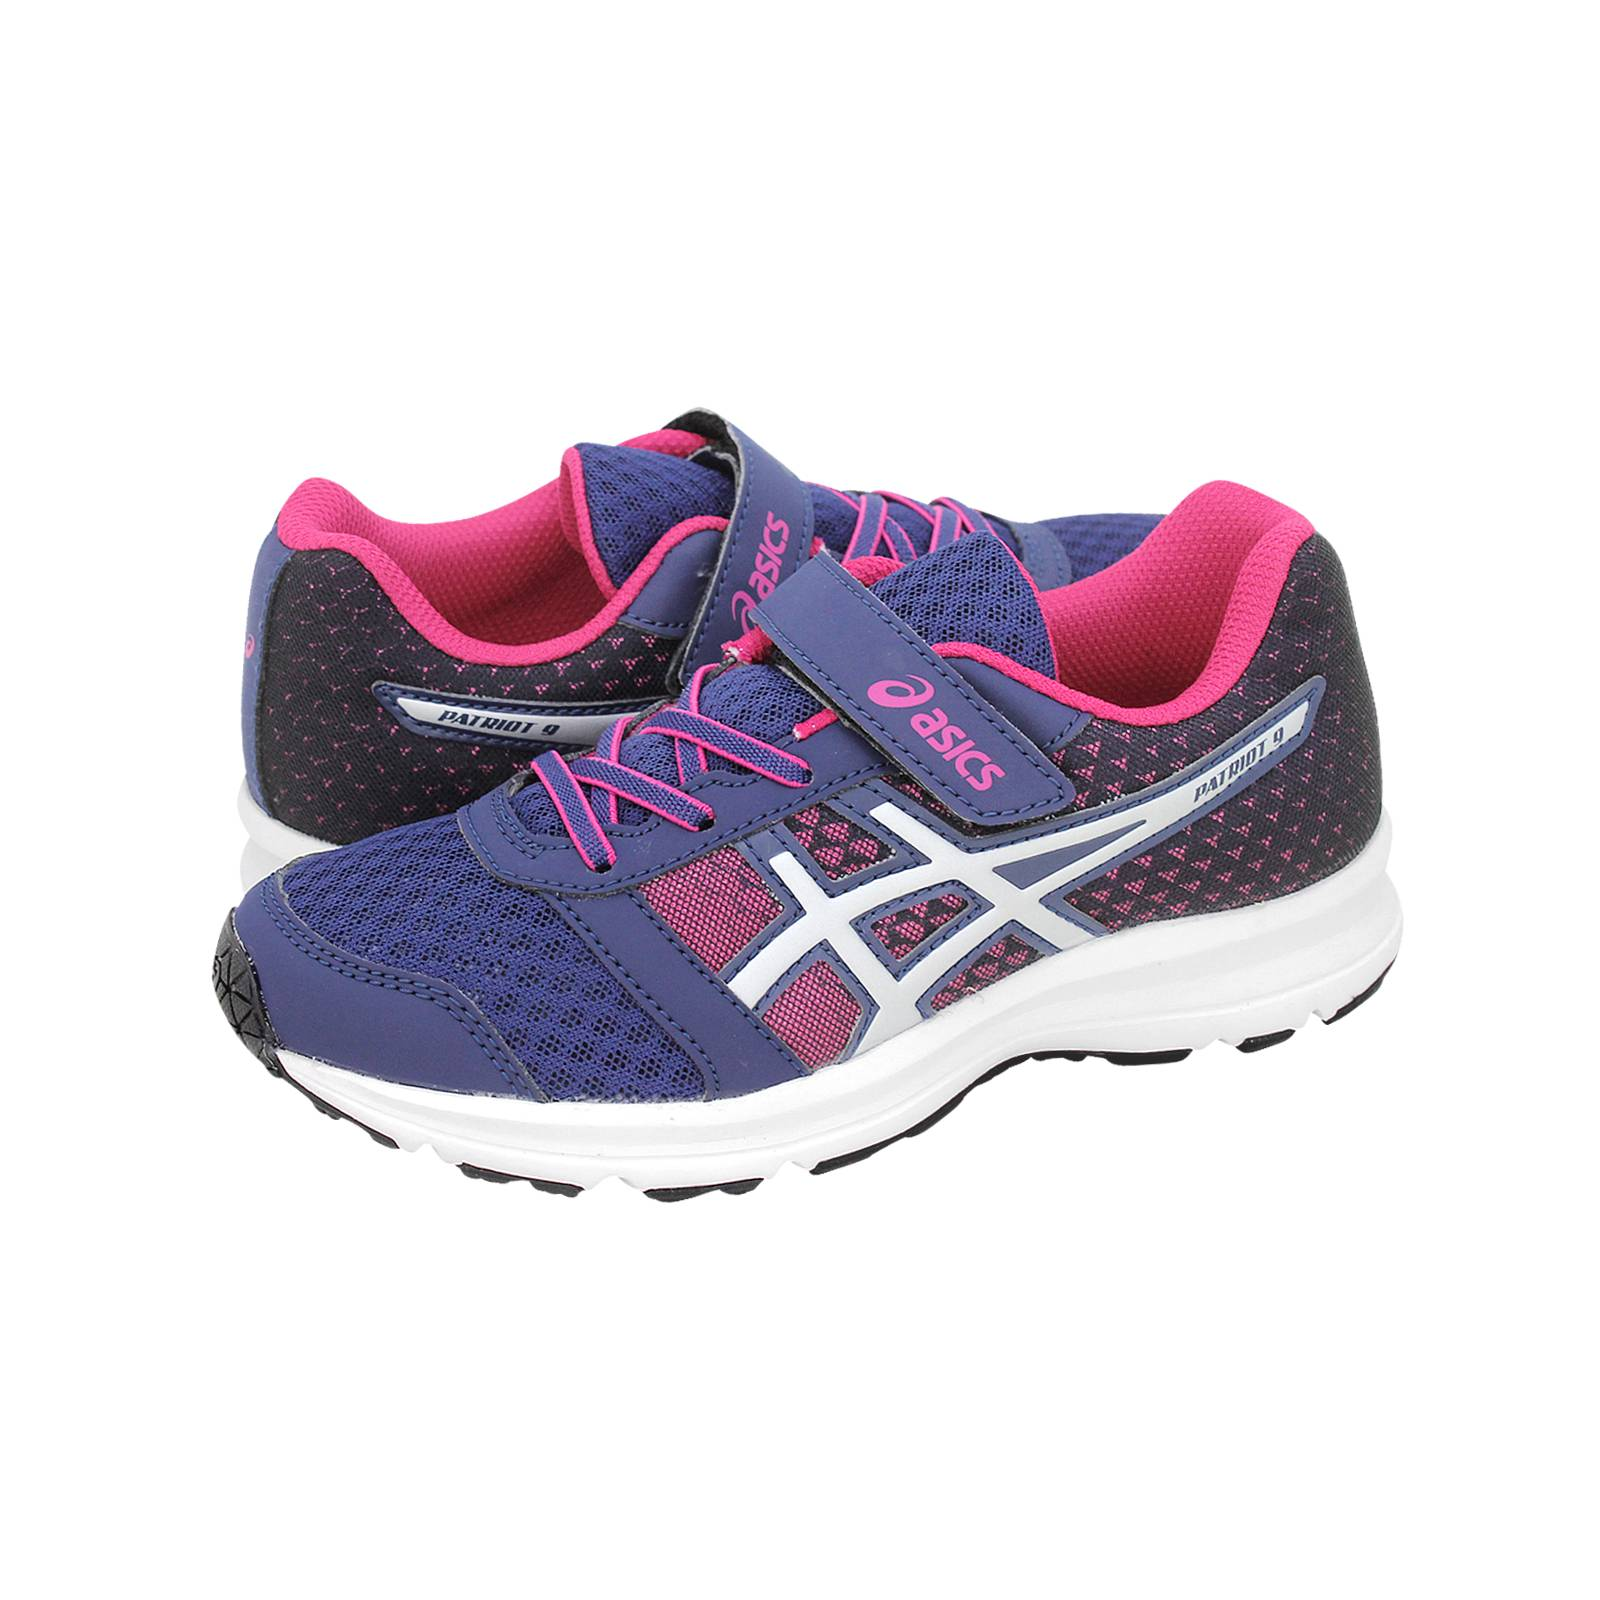 90d184828f5 Patriot 9 - Παιδικά αθλητικά παπούτσια Asics από υφασμα και δερμα ...